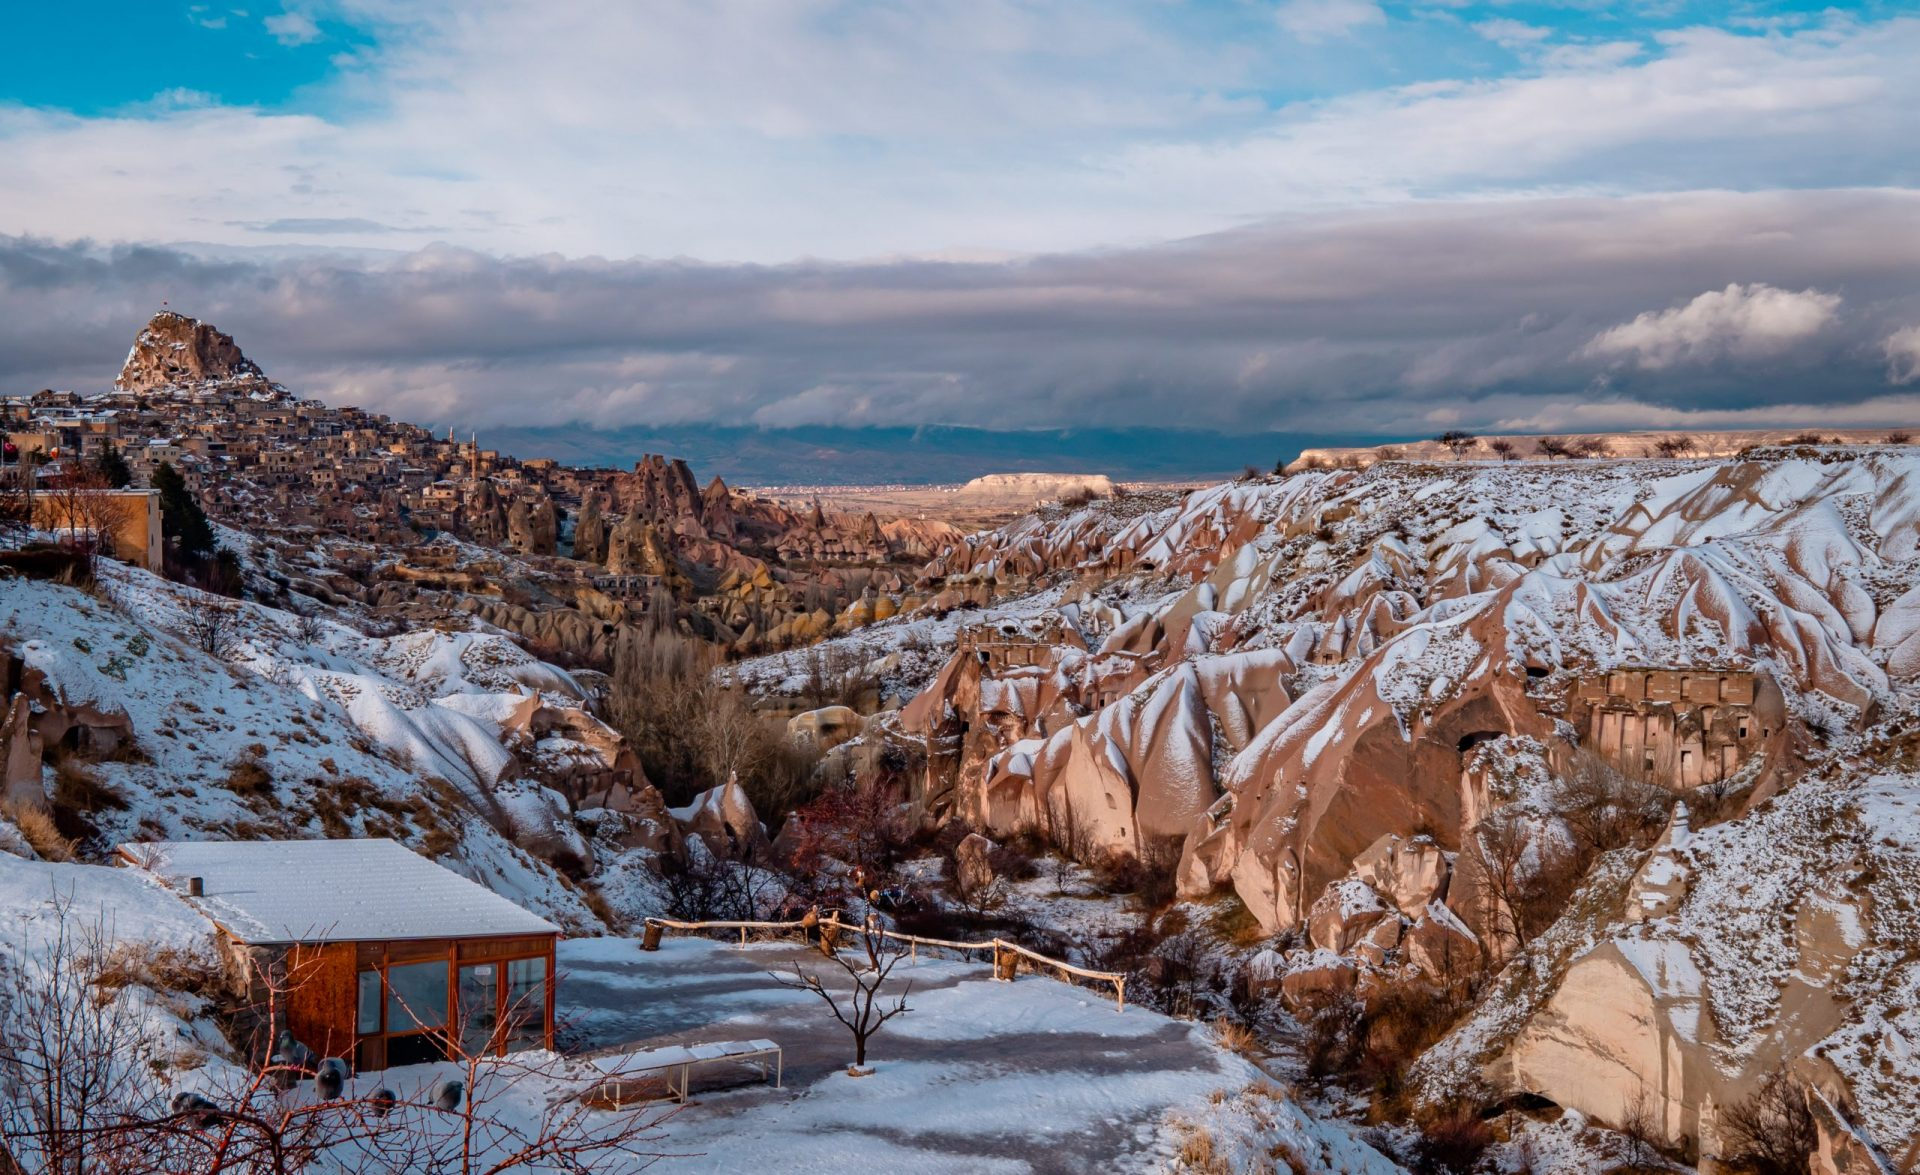 10 Common Travel Photography Mistakes - the pigeon valley in Cappadocia, Turkey